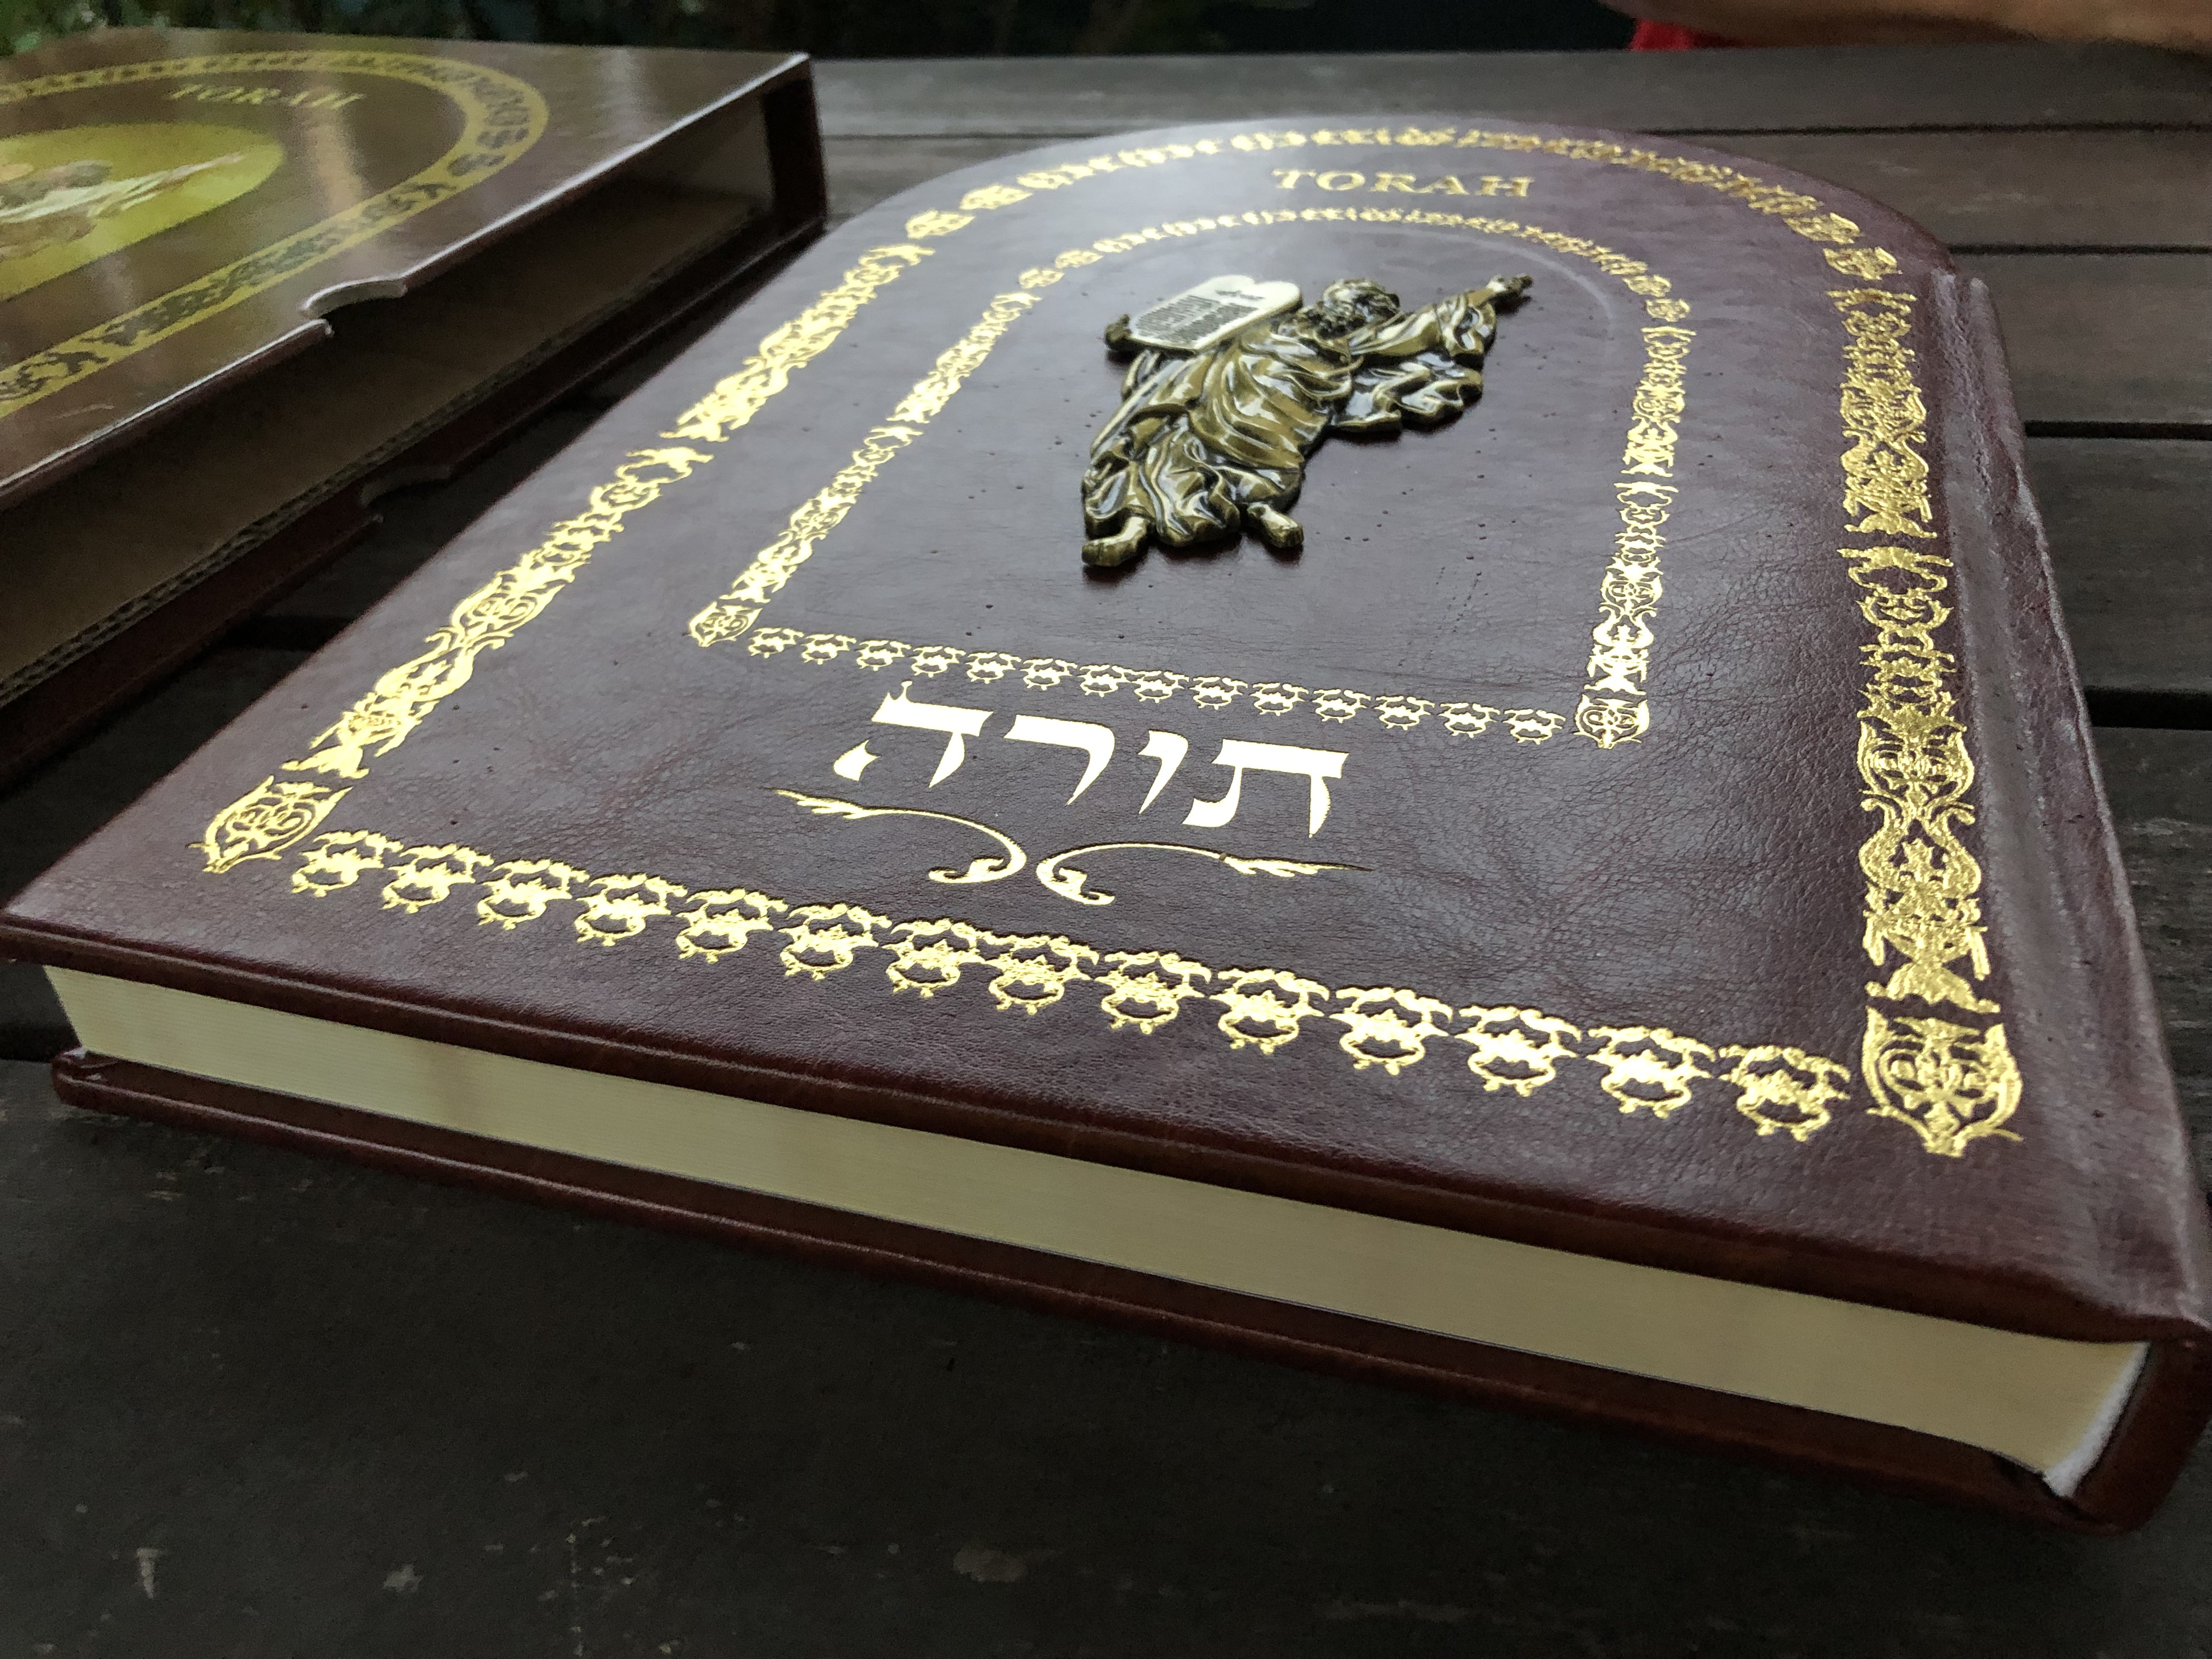 torah-holy-land-edition-the-five-books-of-moses-in-hebrew-and-english-zvi-zachor-2nd-printing-2016-3-.jpg